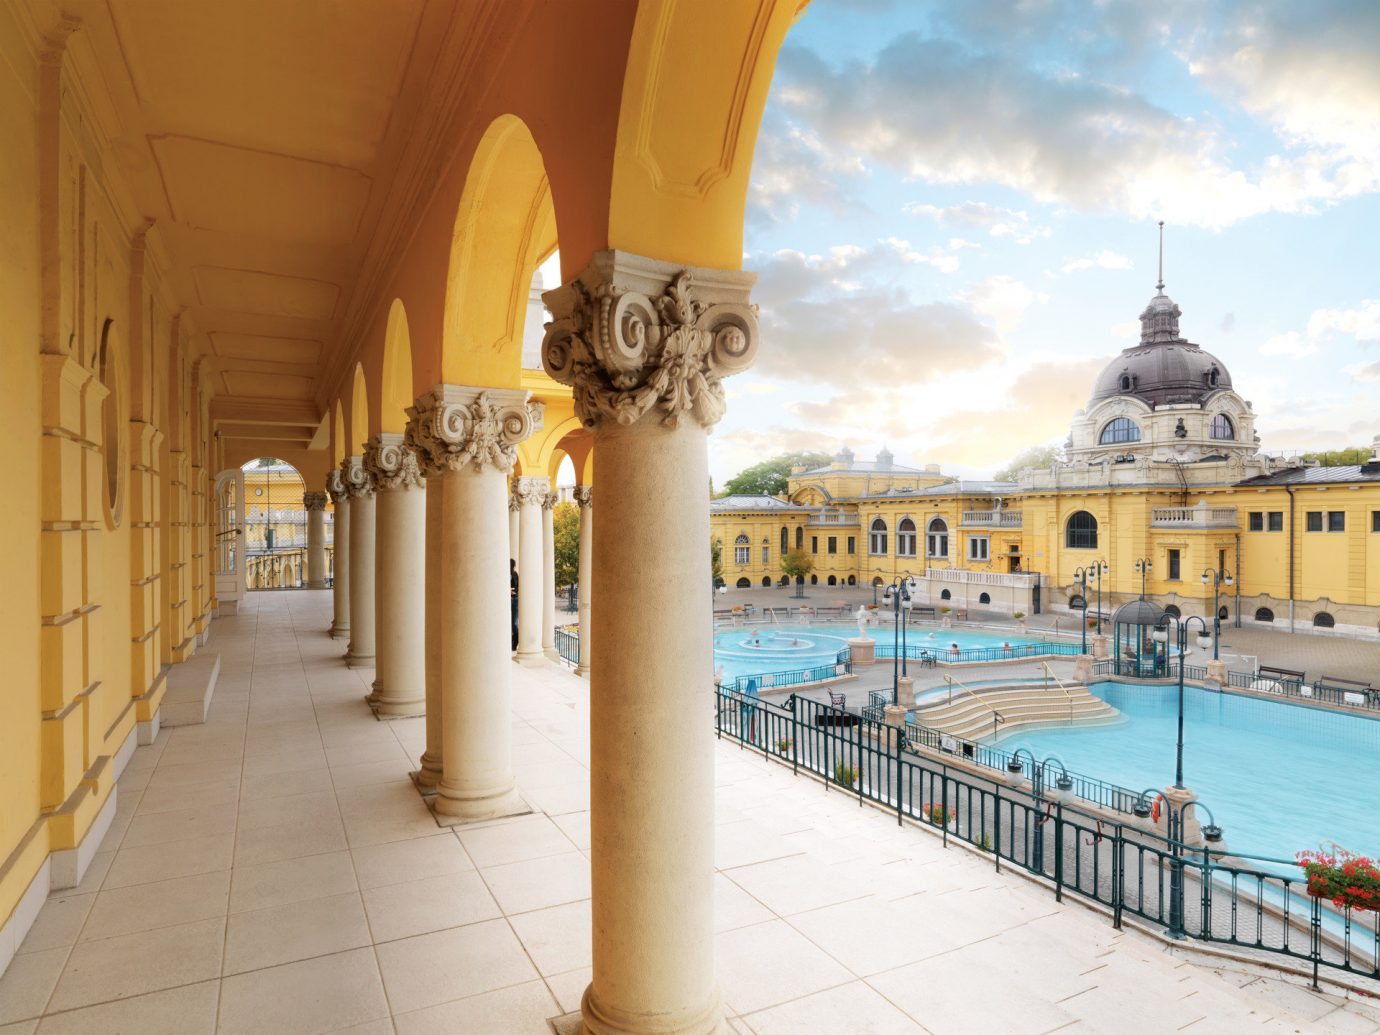 Architecture building Buildings City city views columns Elegant europe Exterior extravagant fancy Historic Luxury outdoor pool Pool regal sophisticated Trip Ideas view palace vacation estate plaza temple ancient history walkway colonnade